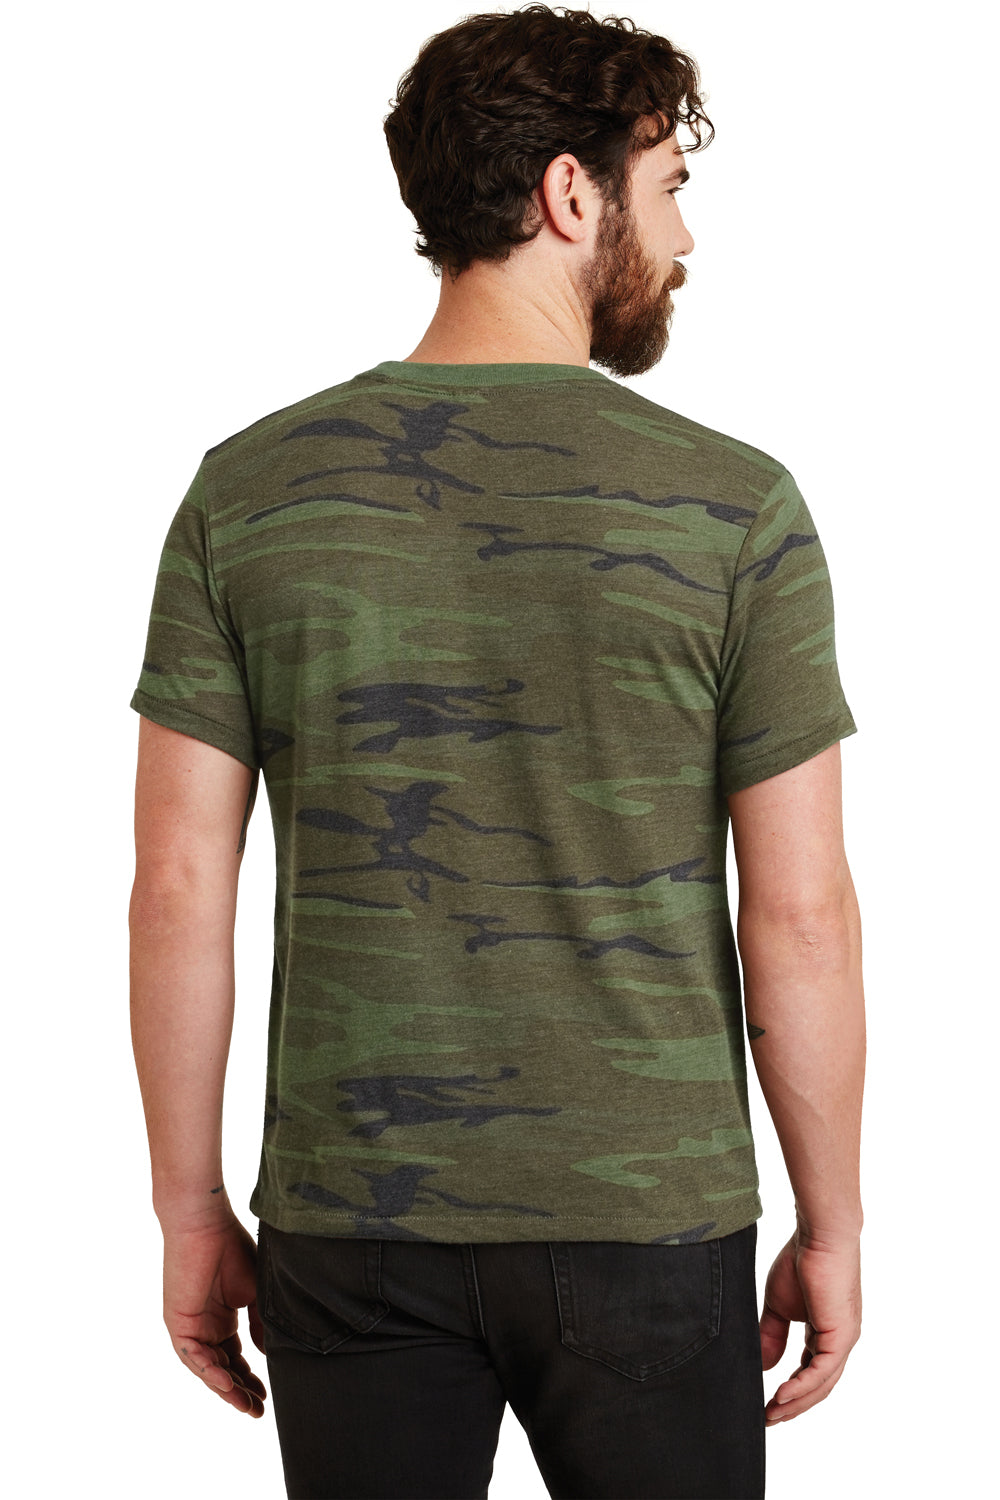 Alternative 01973EA Mens Printed Eco Jersey Short Sleeve Crewneck T-Shirt Camo Back